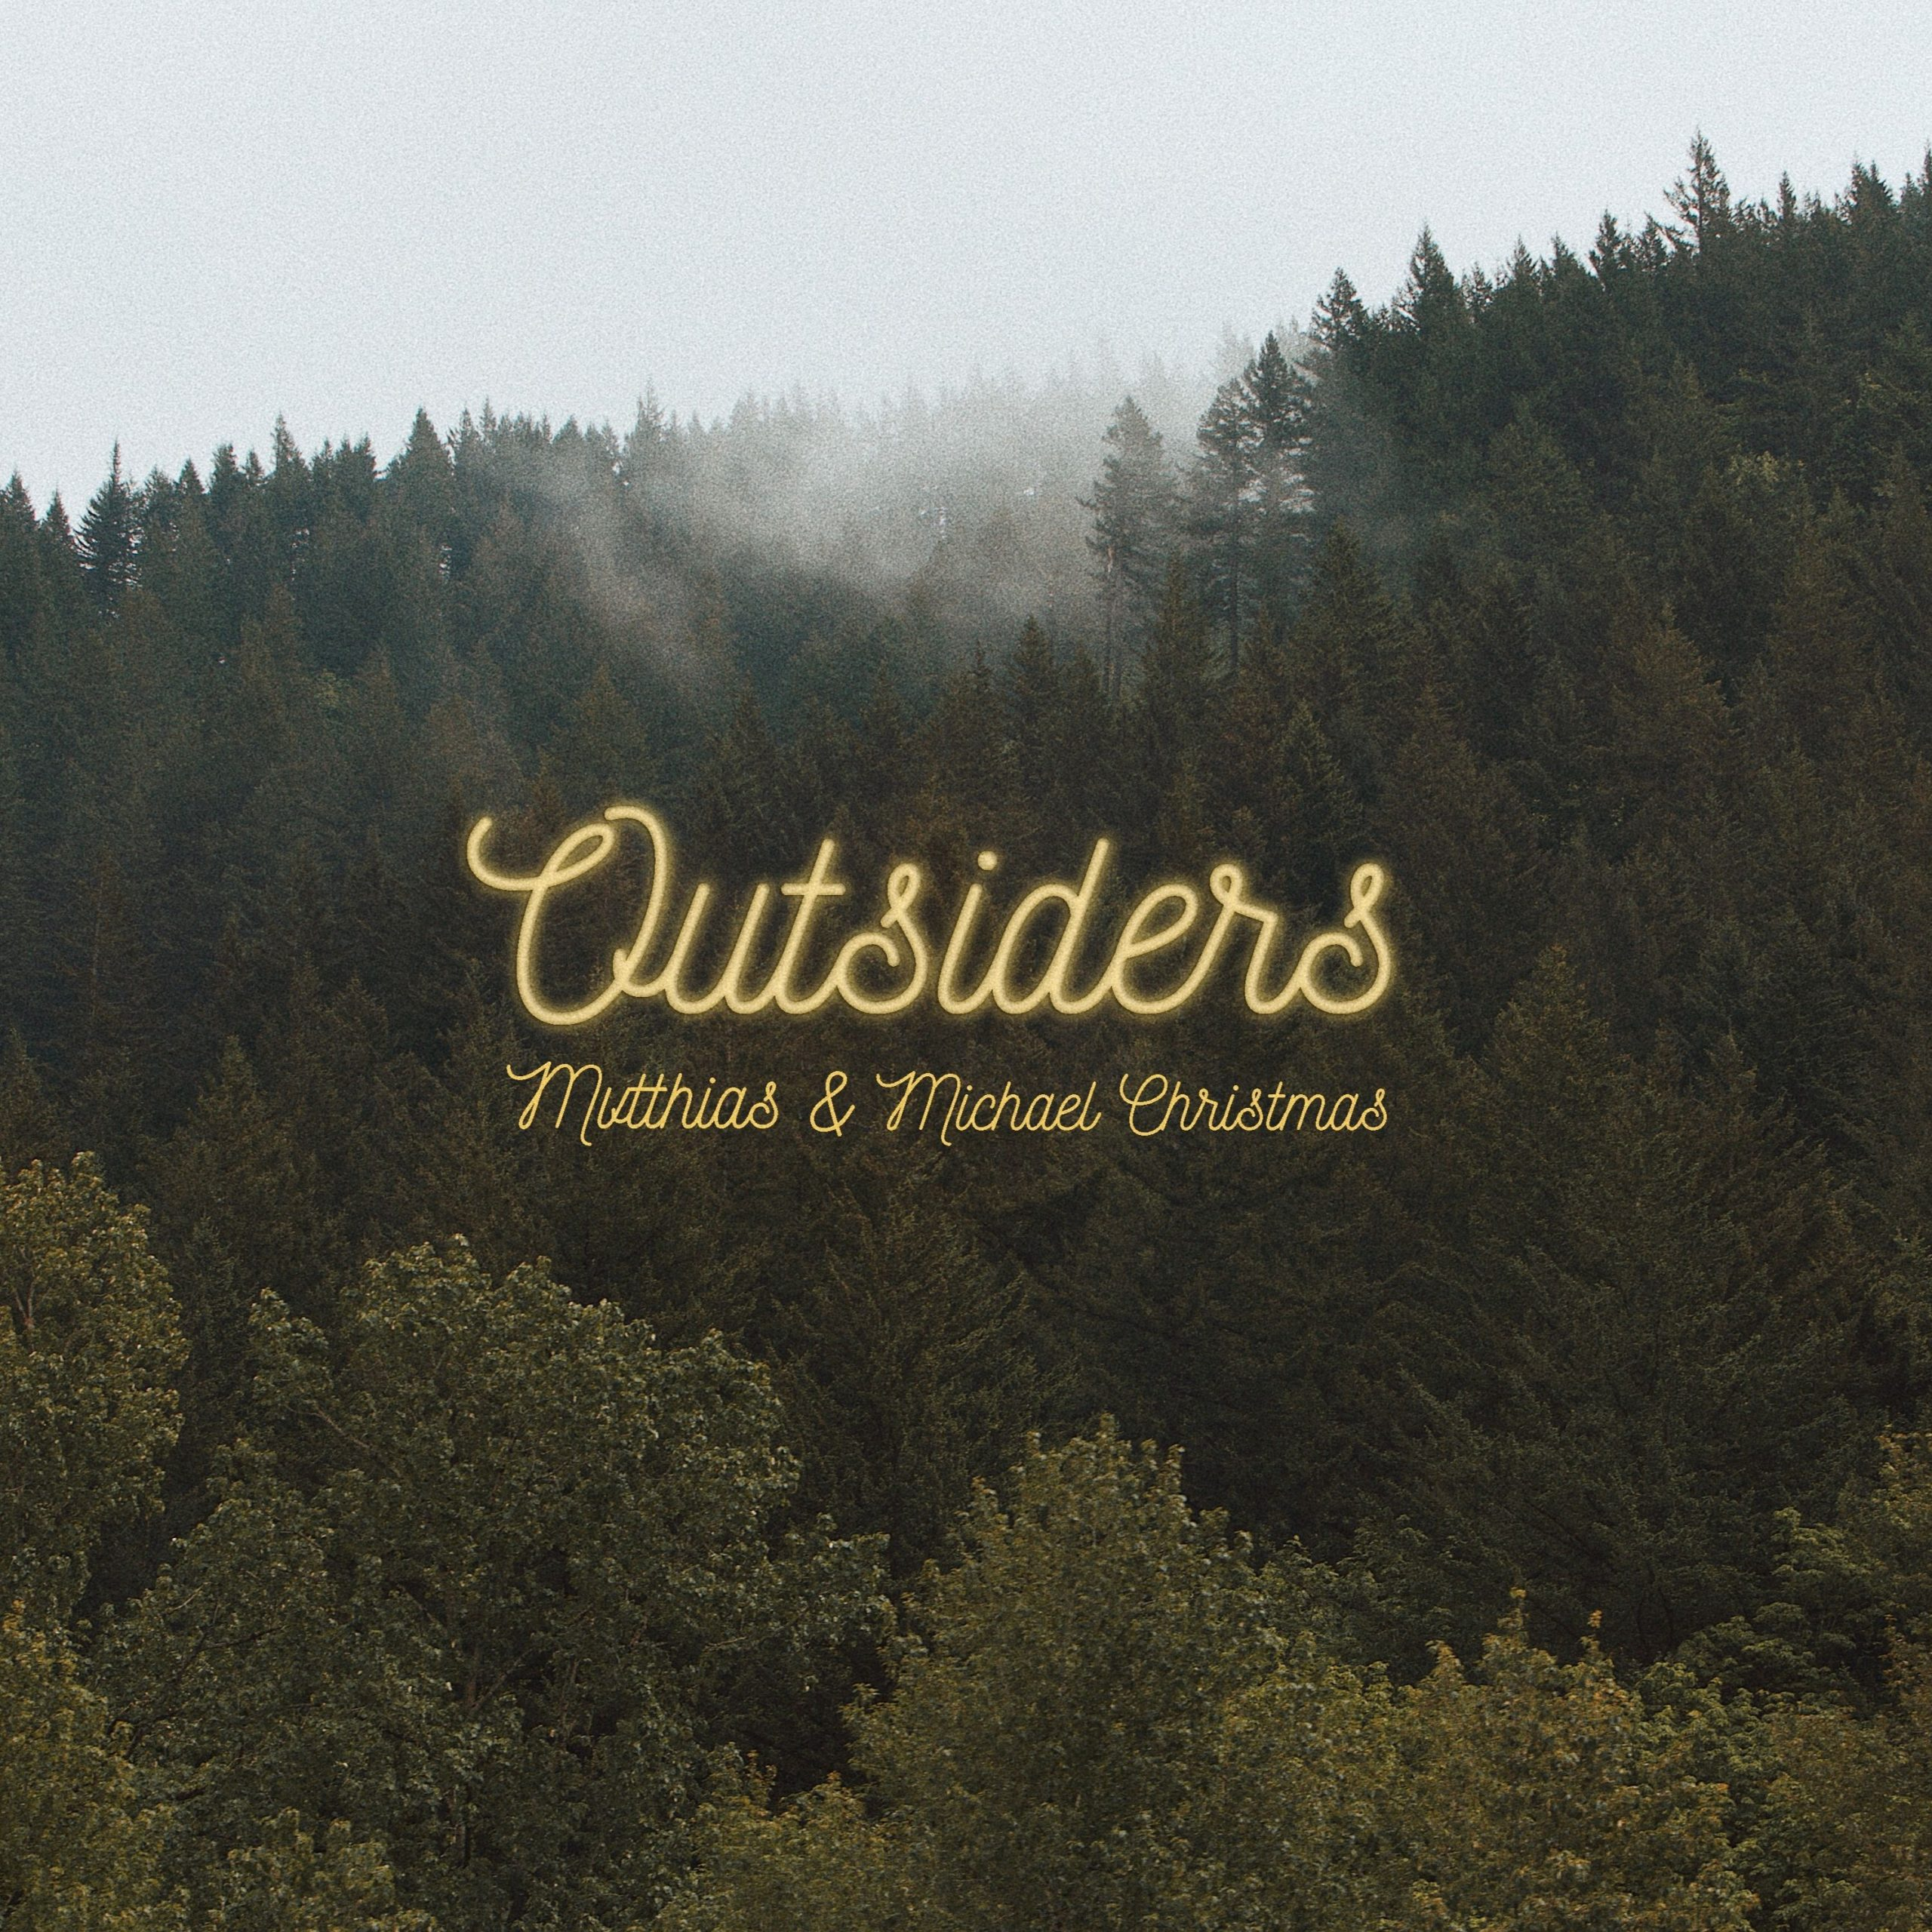 MVTTHIAS's cover art for 'Outsiders' featuring Michael Christmas